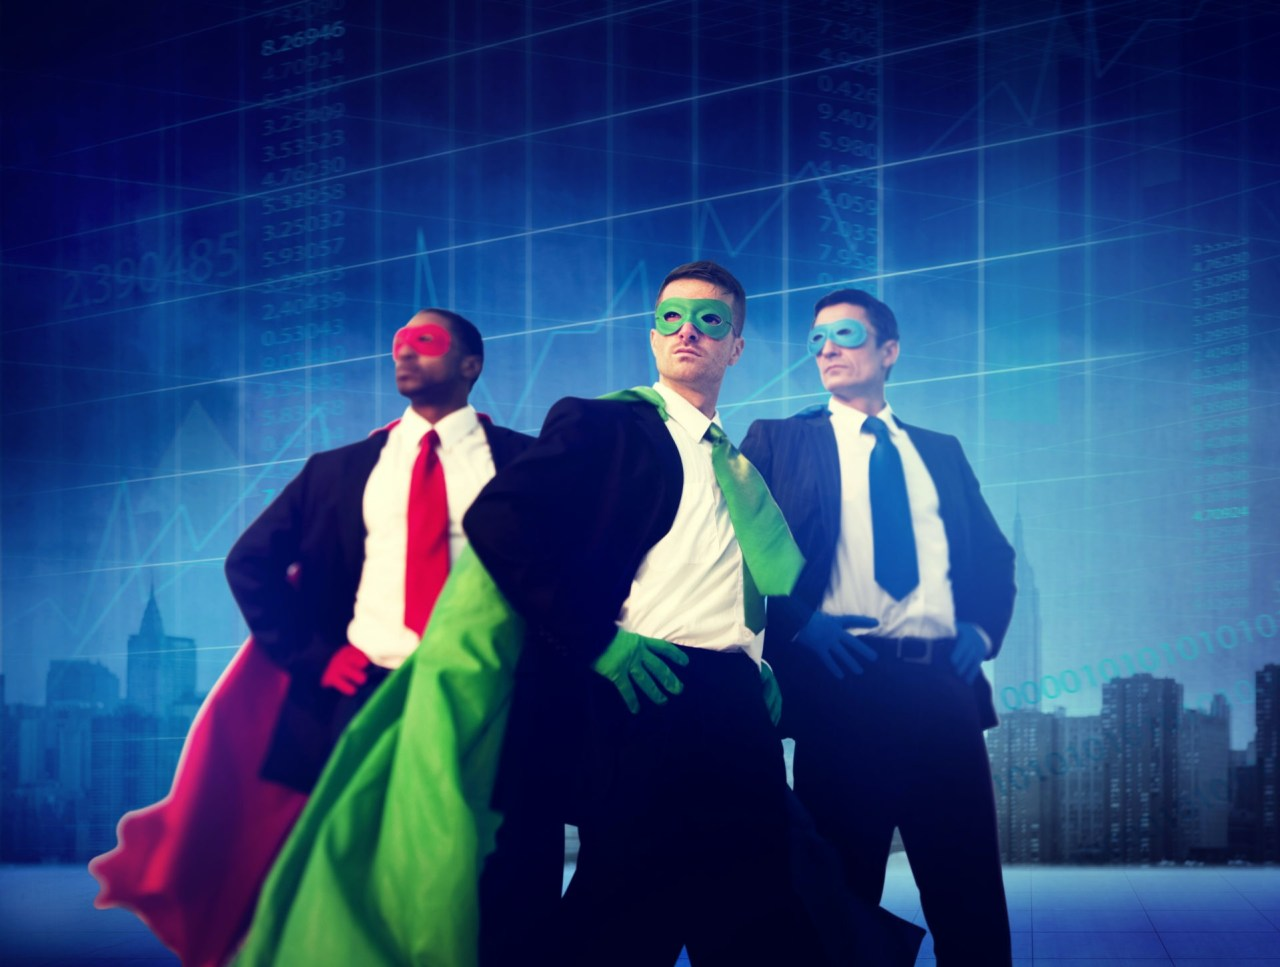 Three men in business professional attire, but also wearing a mask over their eyes and a cape blowing. Behind them is a blue tined cityscape with many graphs and numbers overlaying it